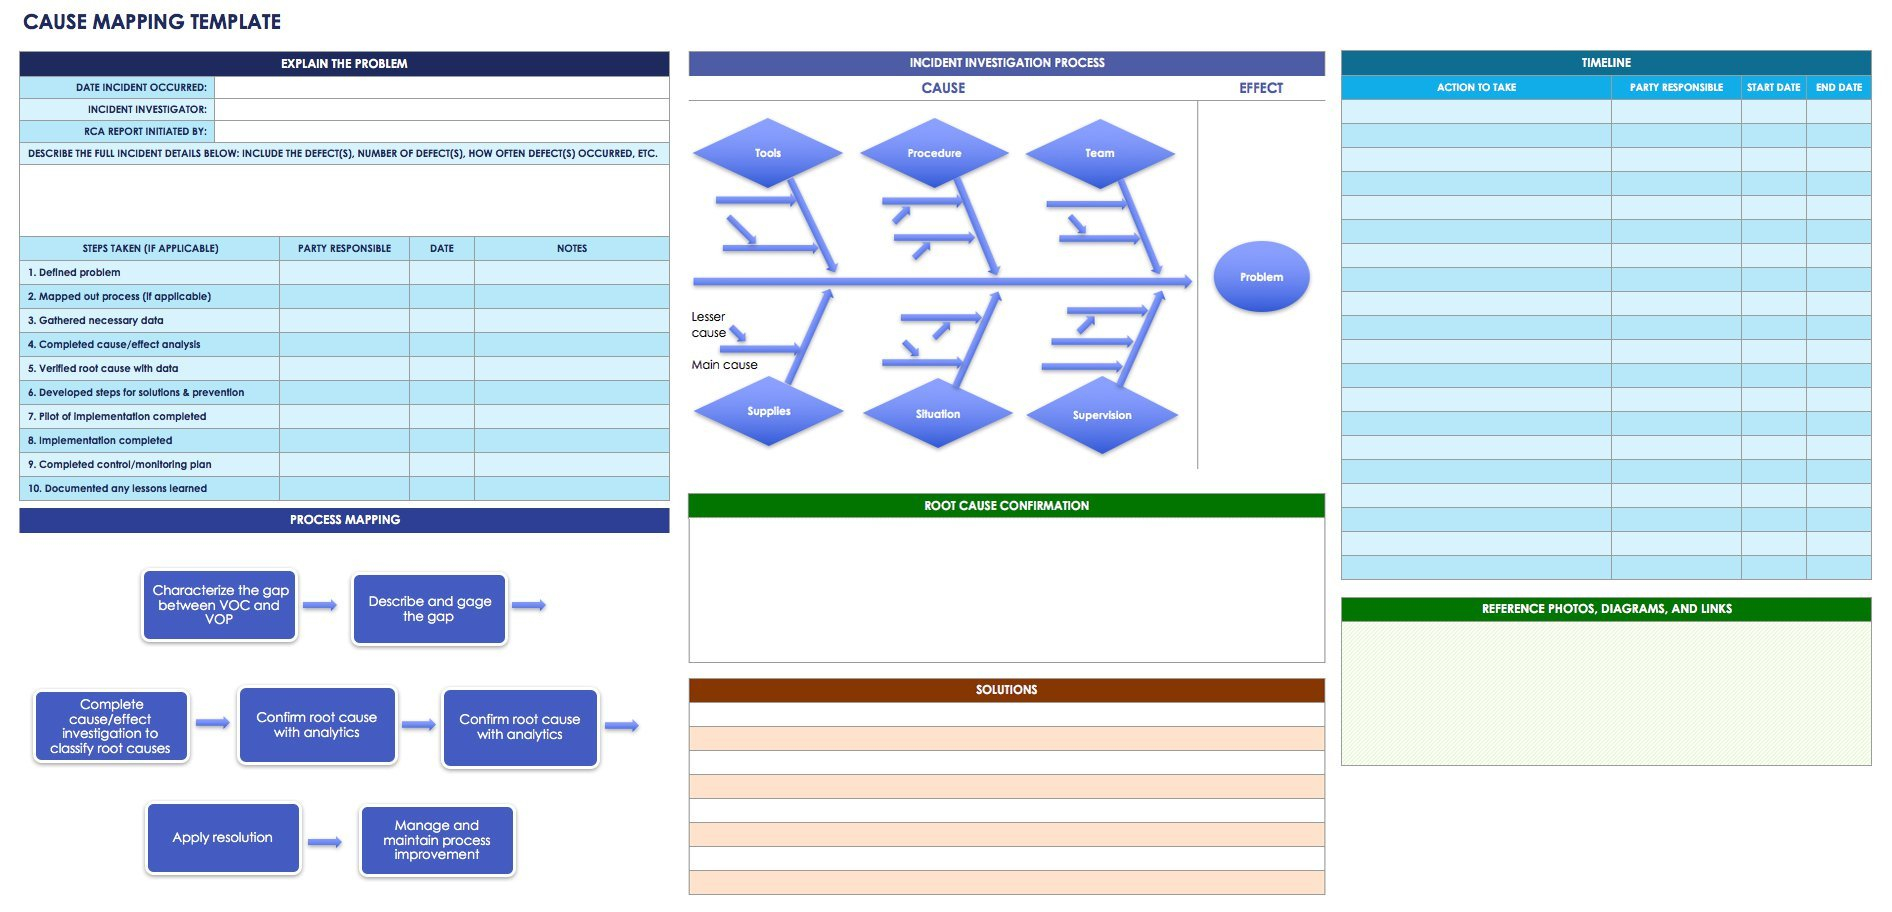 13 Root Cause Analysis Templates Download 2019 Intended For Root Cause Analysis 5 Whys Worksheet